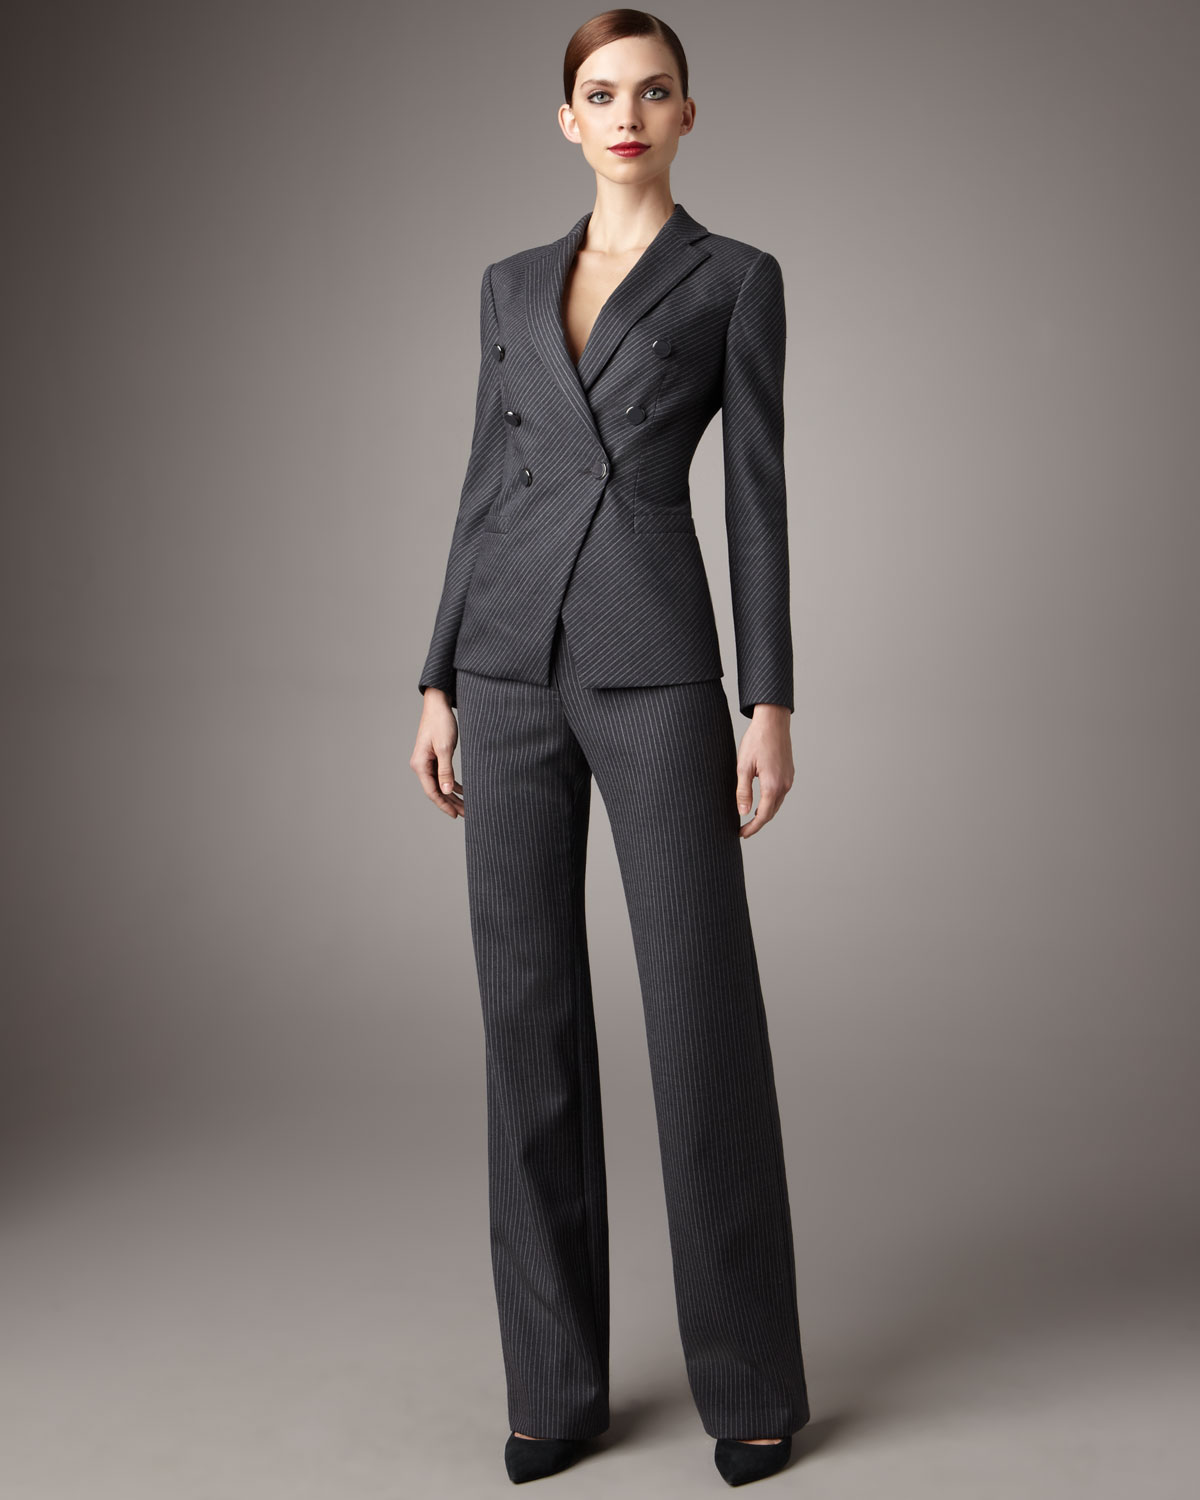 Shop for work suits for women at nichapie.ml Browse office-ready pantsuits, skirt suits and complete suit outfits from top brands. Free shipping and returns.